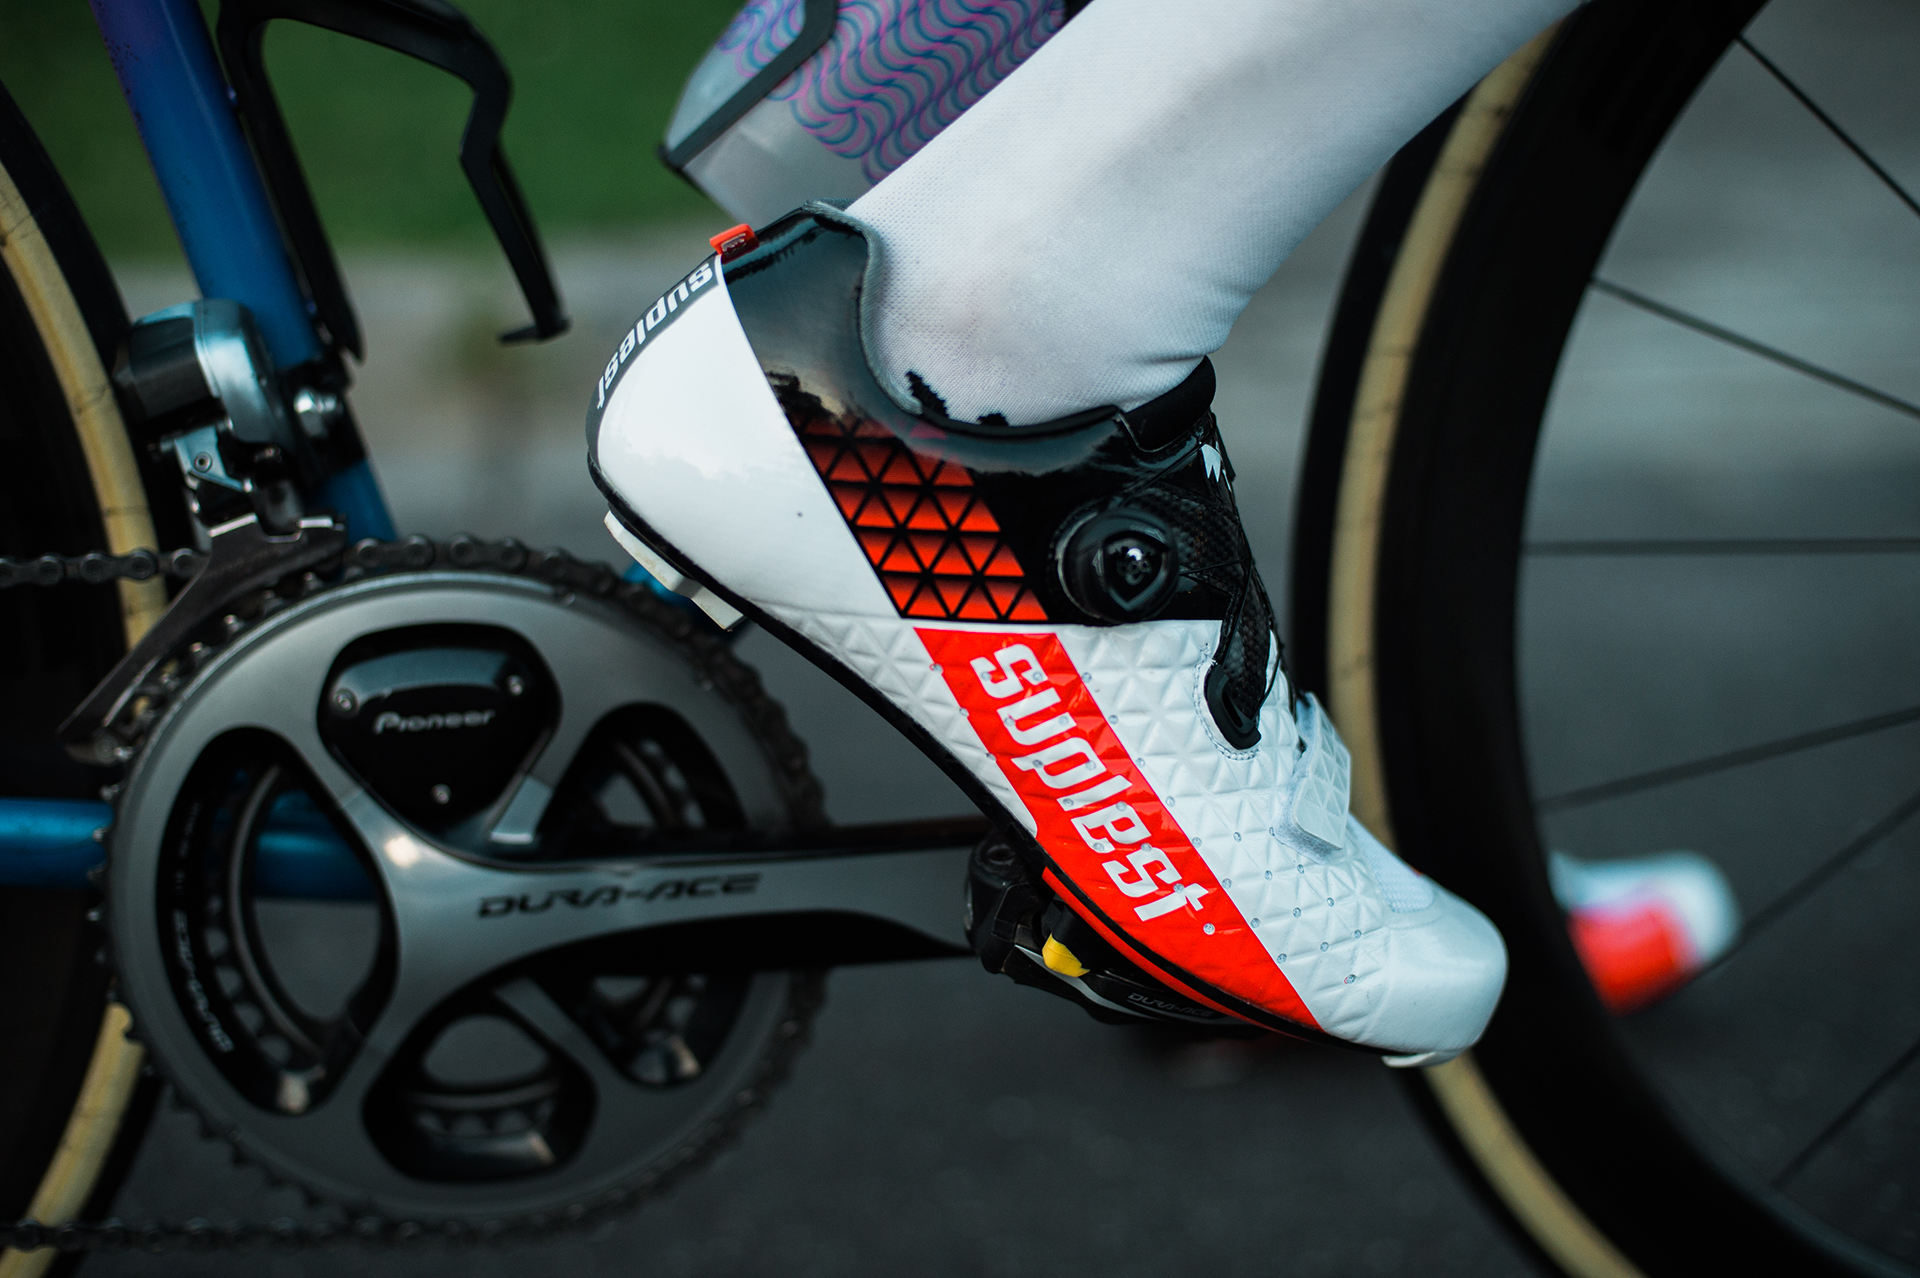 0bbb3bdbac Cycling Kit Review: Suplest Road Performance Shoes